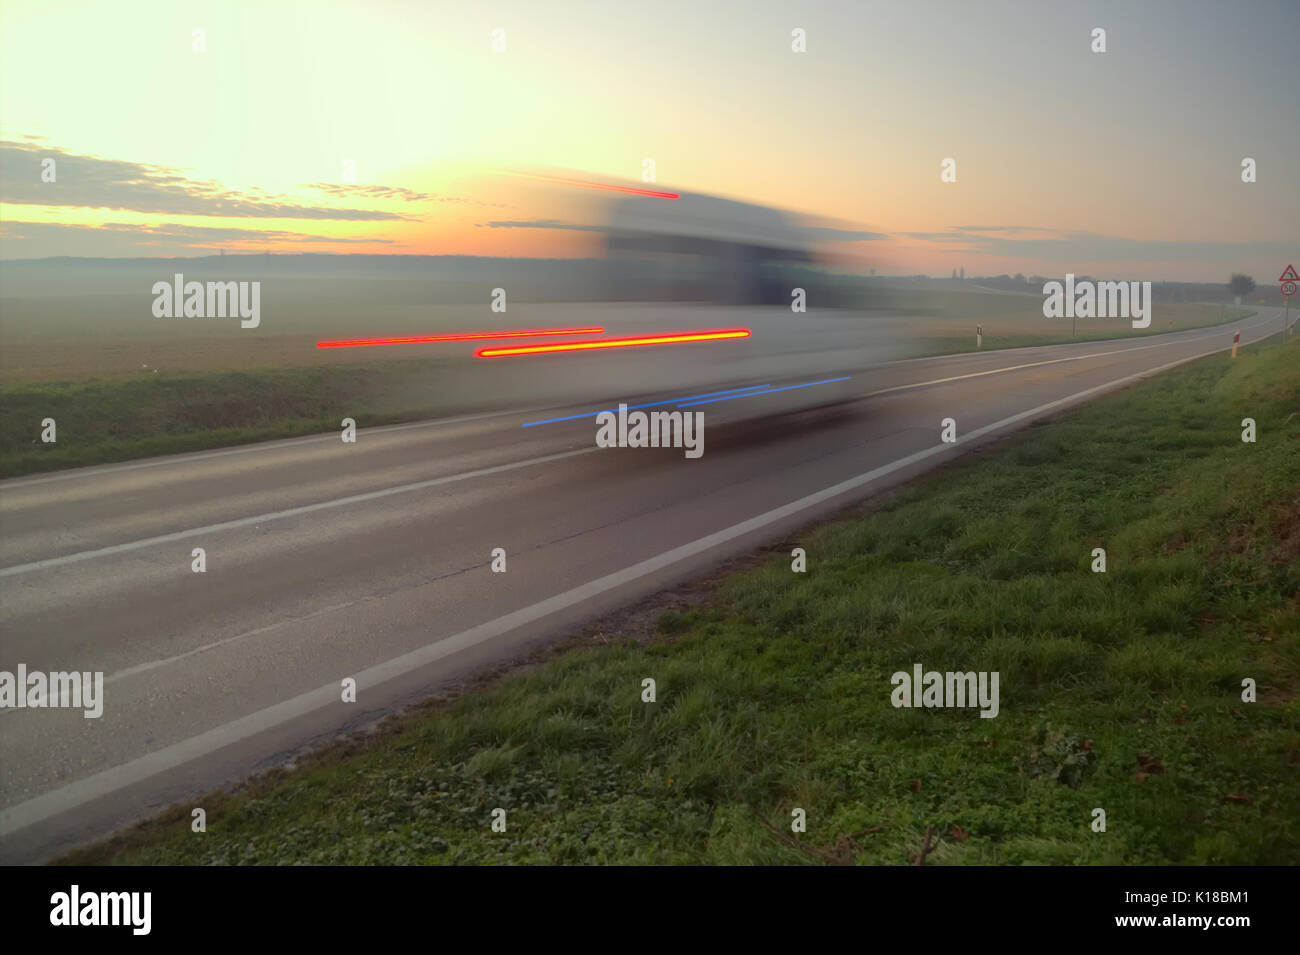 Car brake in night conditions. - Stock Image